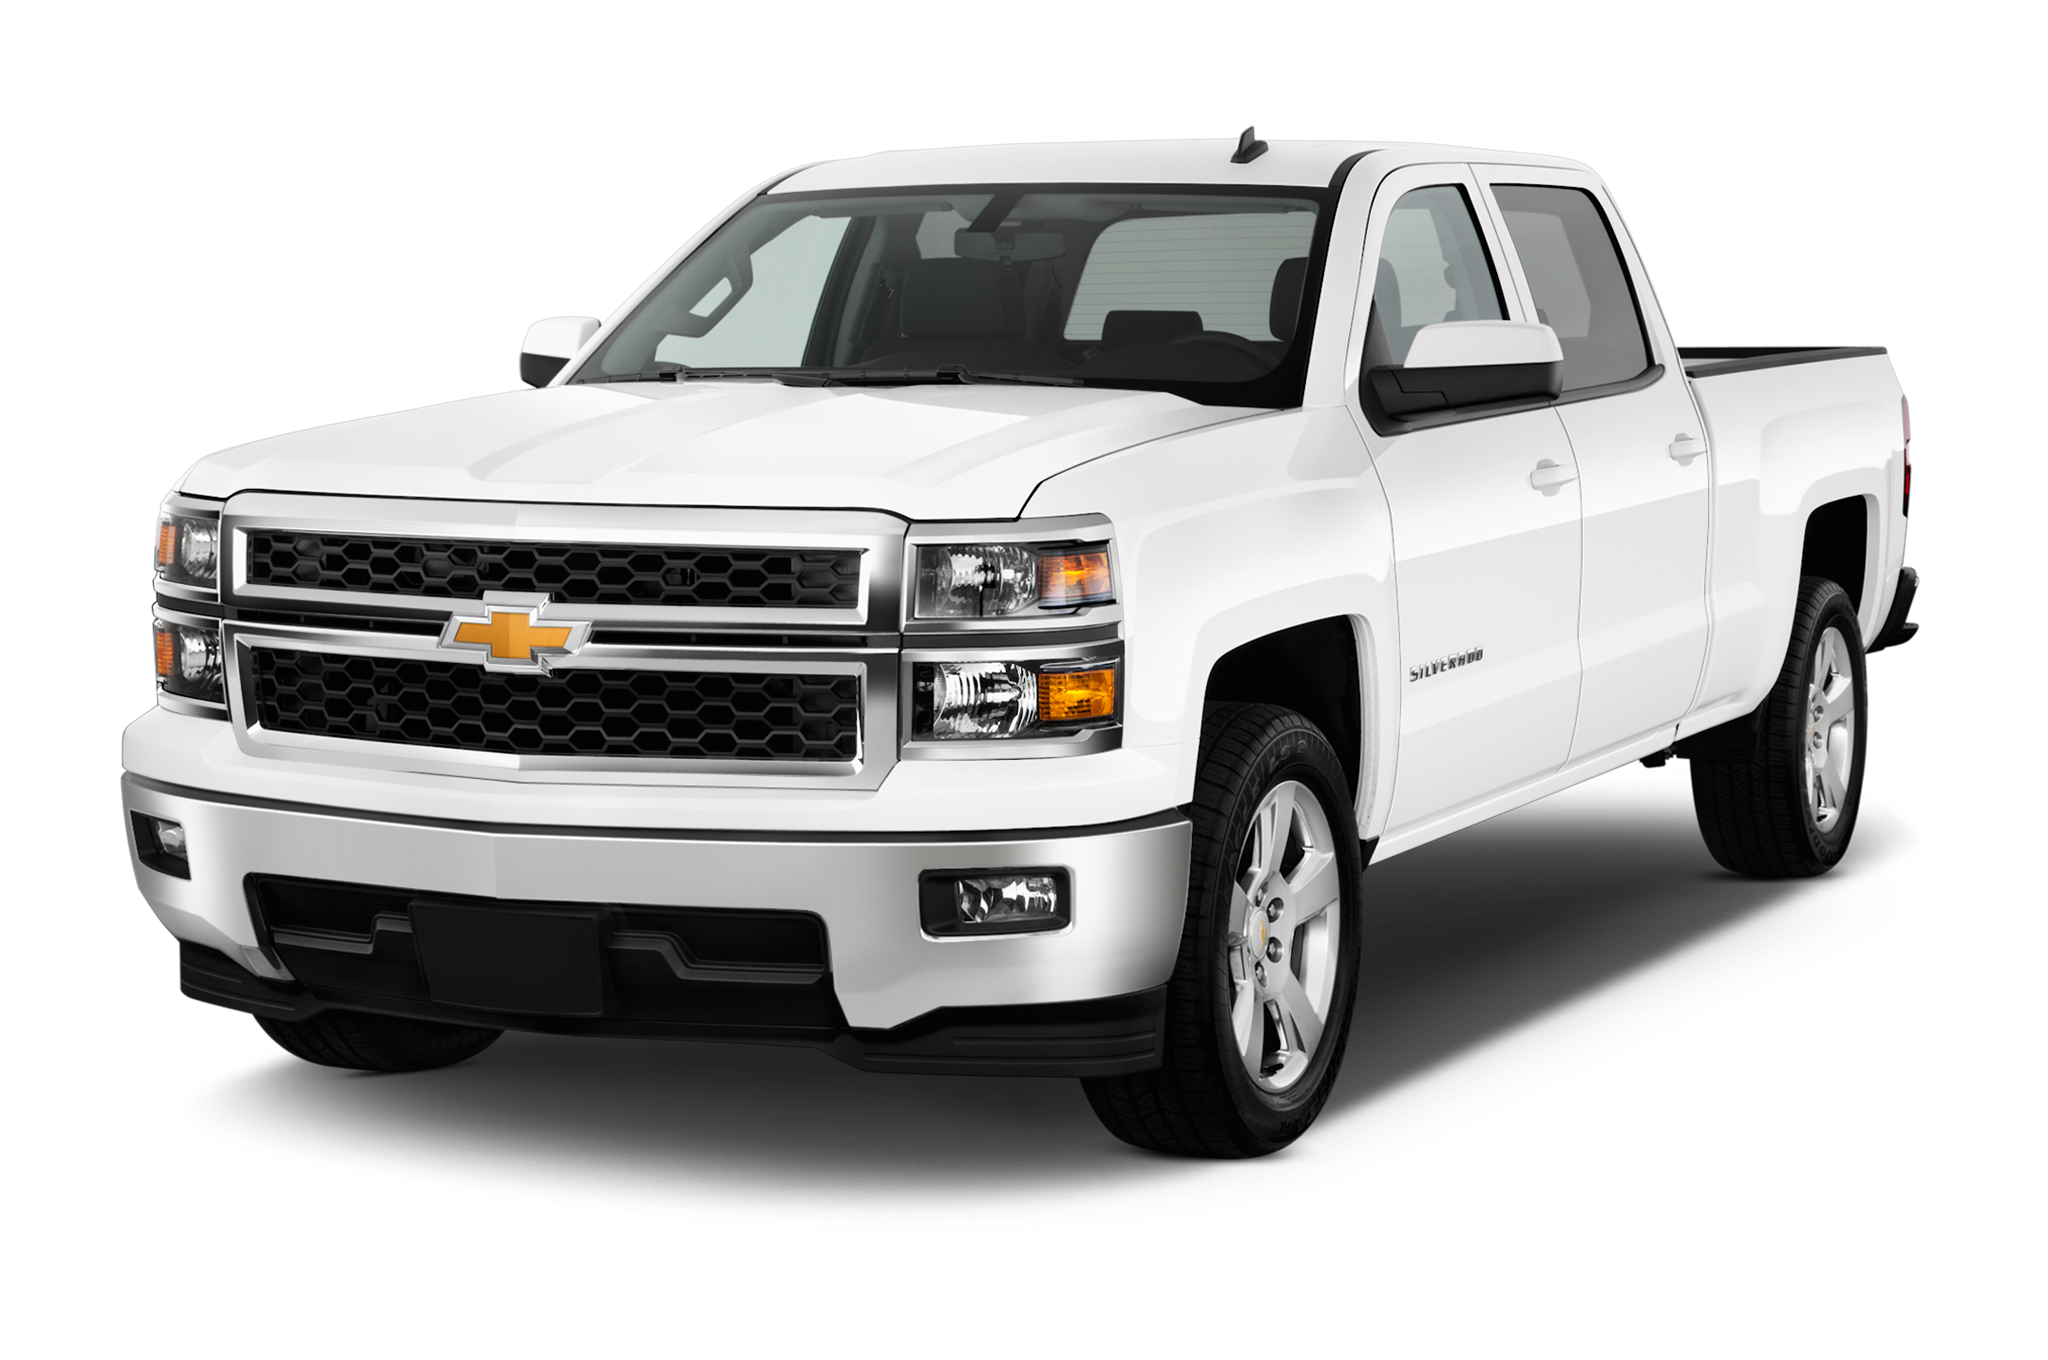 Chevy Pickup Png & Free Chevy Pickup.png Transparent Images #13895.